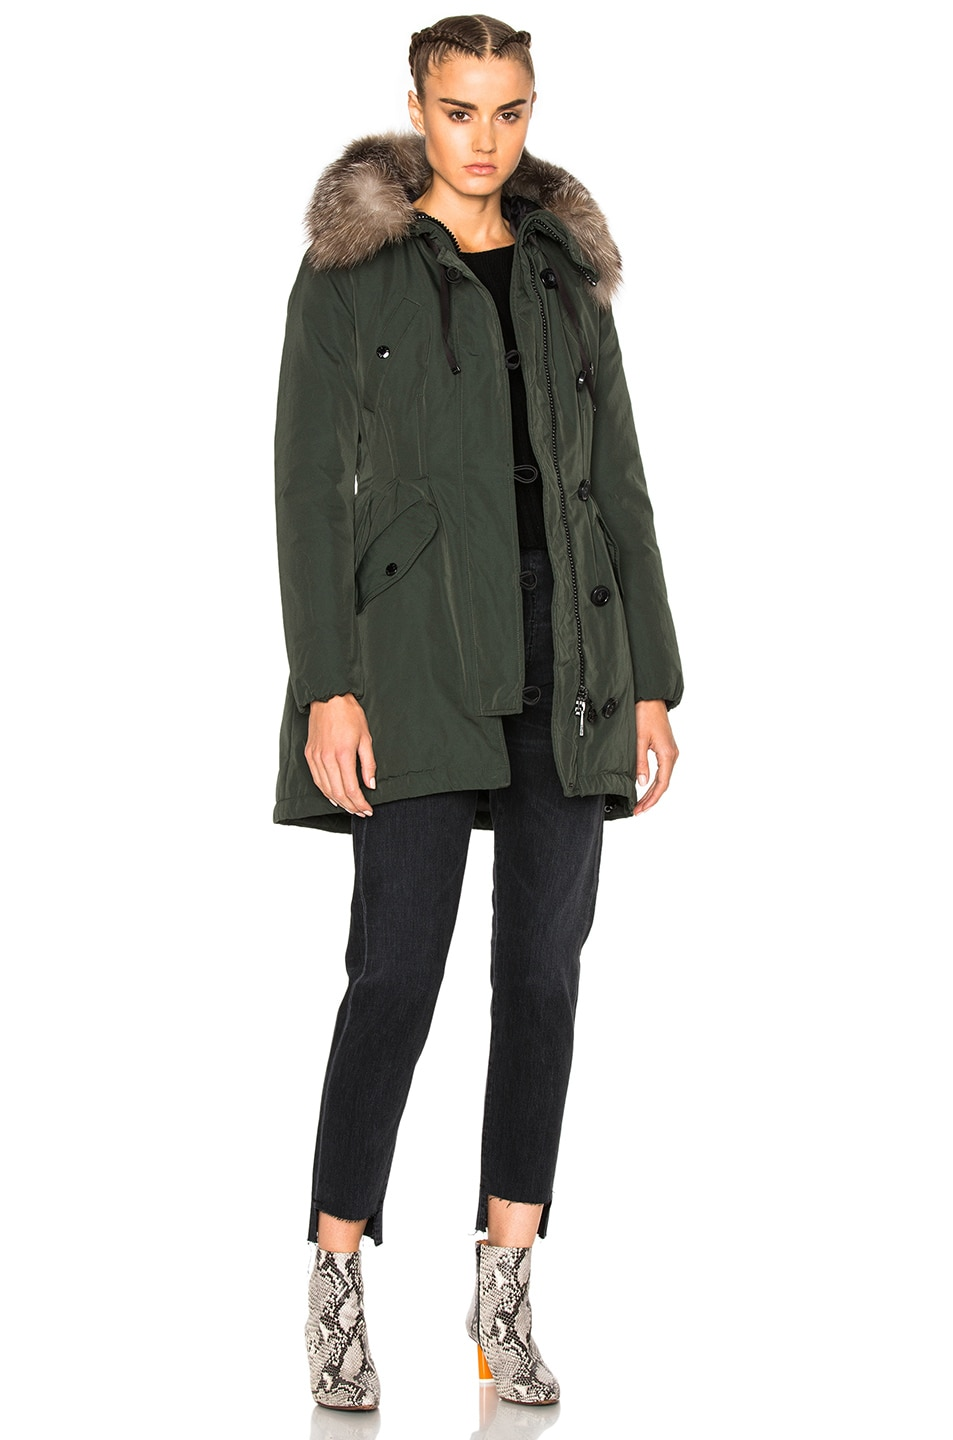 Image 1 of Moncler Aredhel Giubbotto Jacket in Green